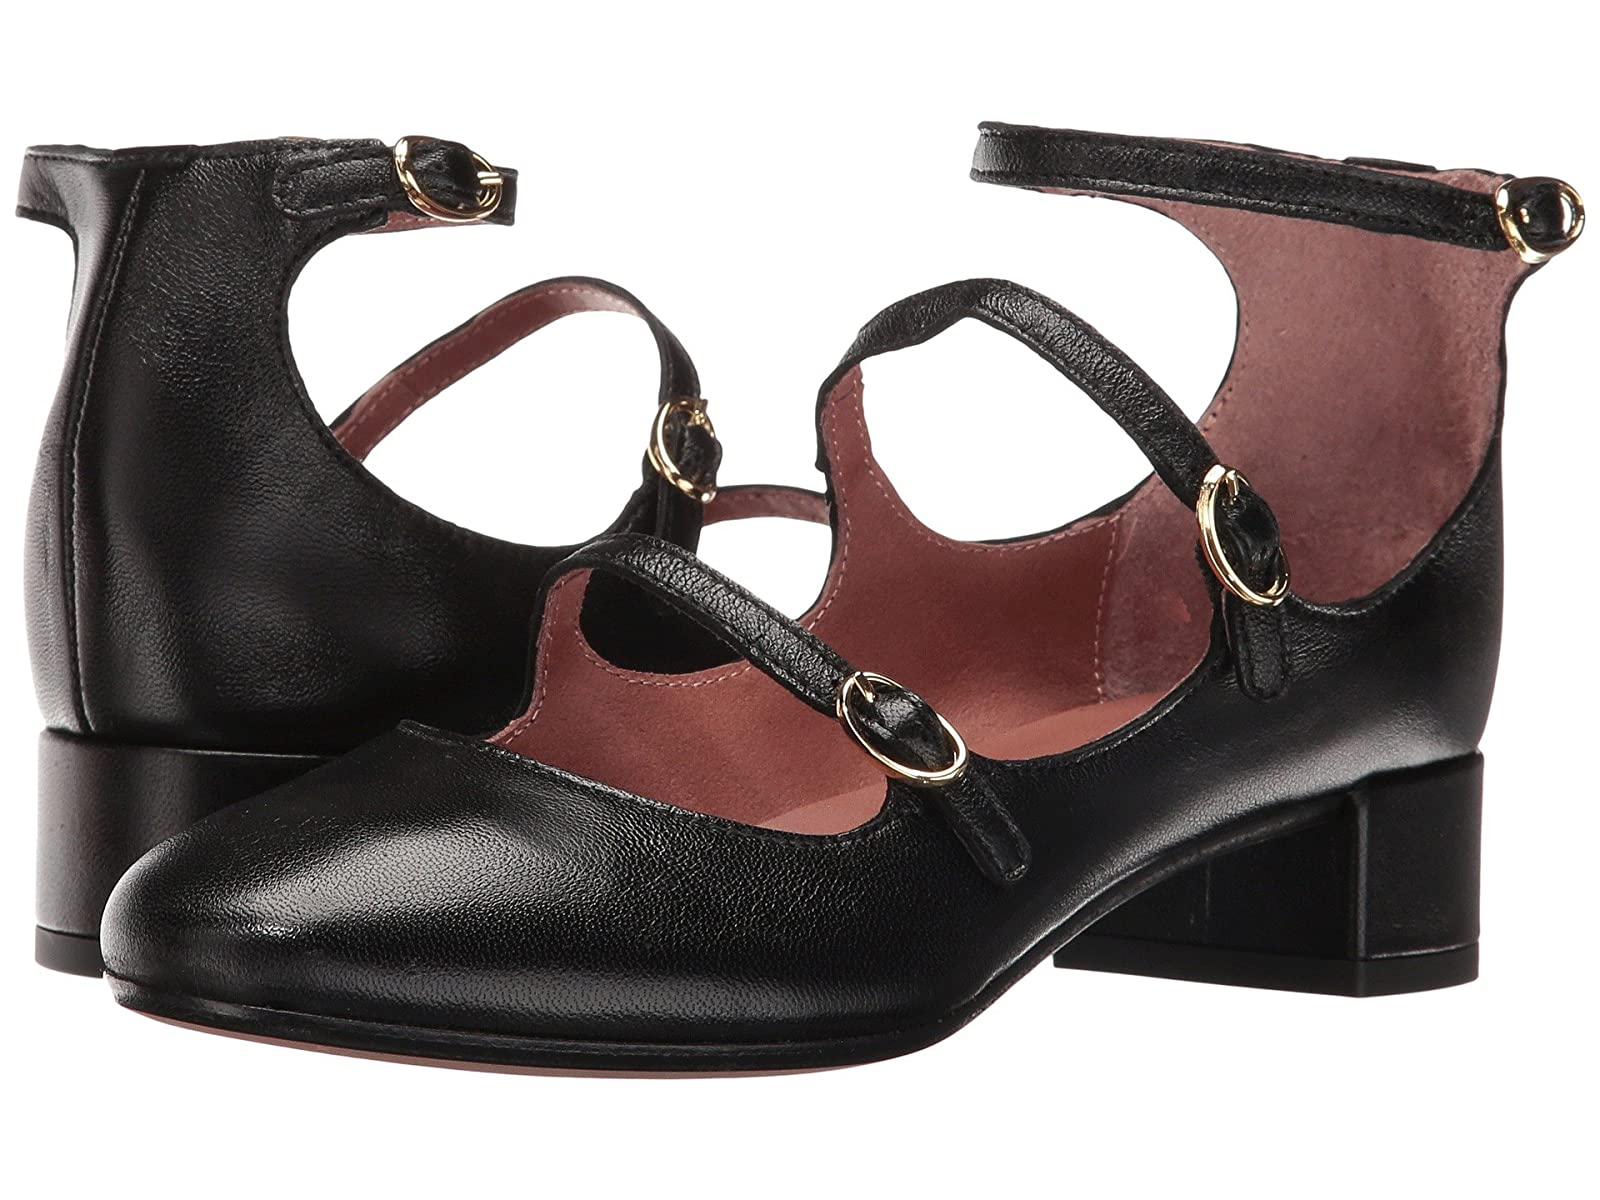 Summit by White Mountain MyrlieCheap and distinctive eye-catching shoes